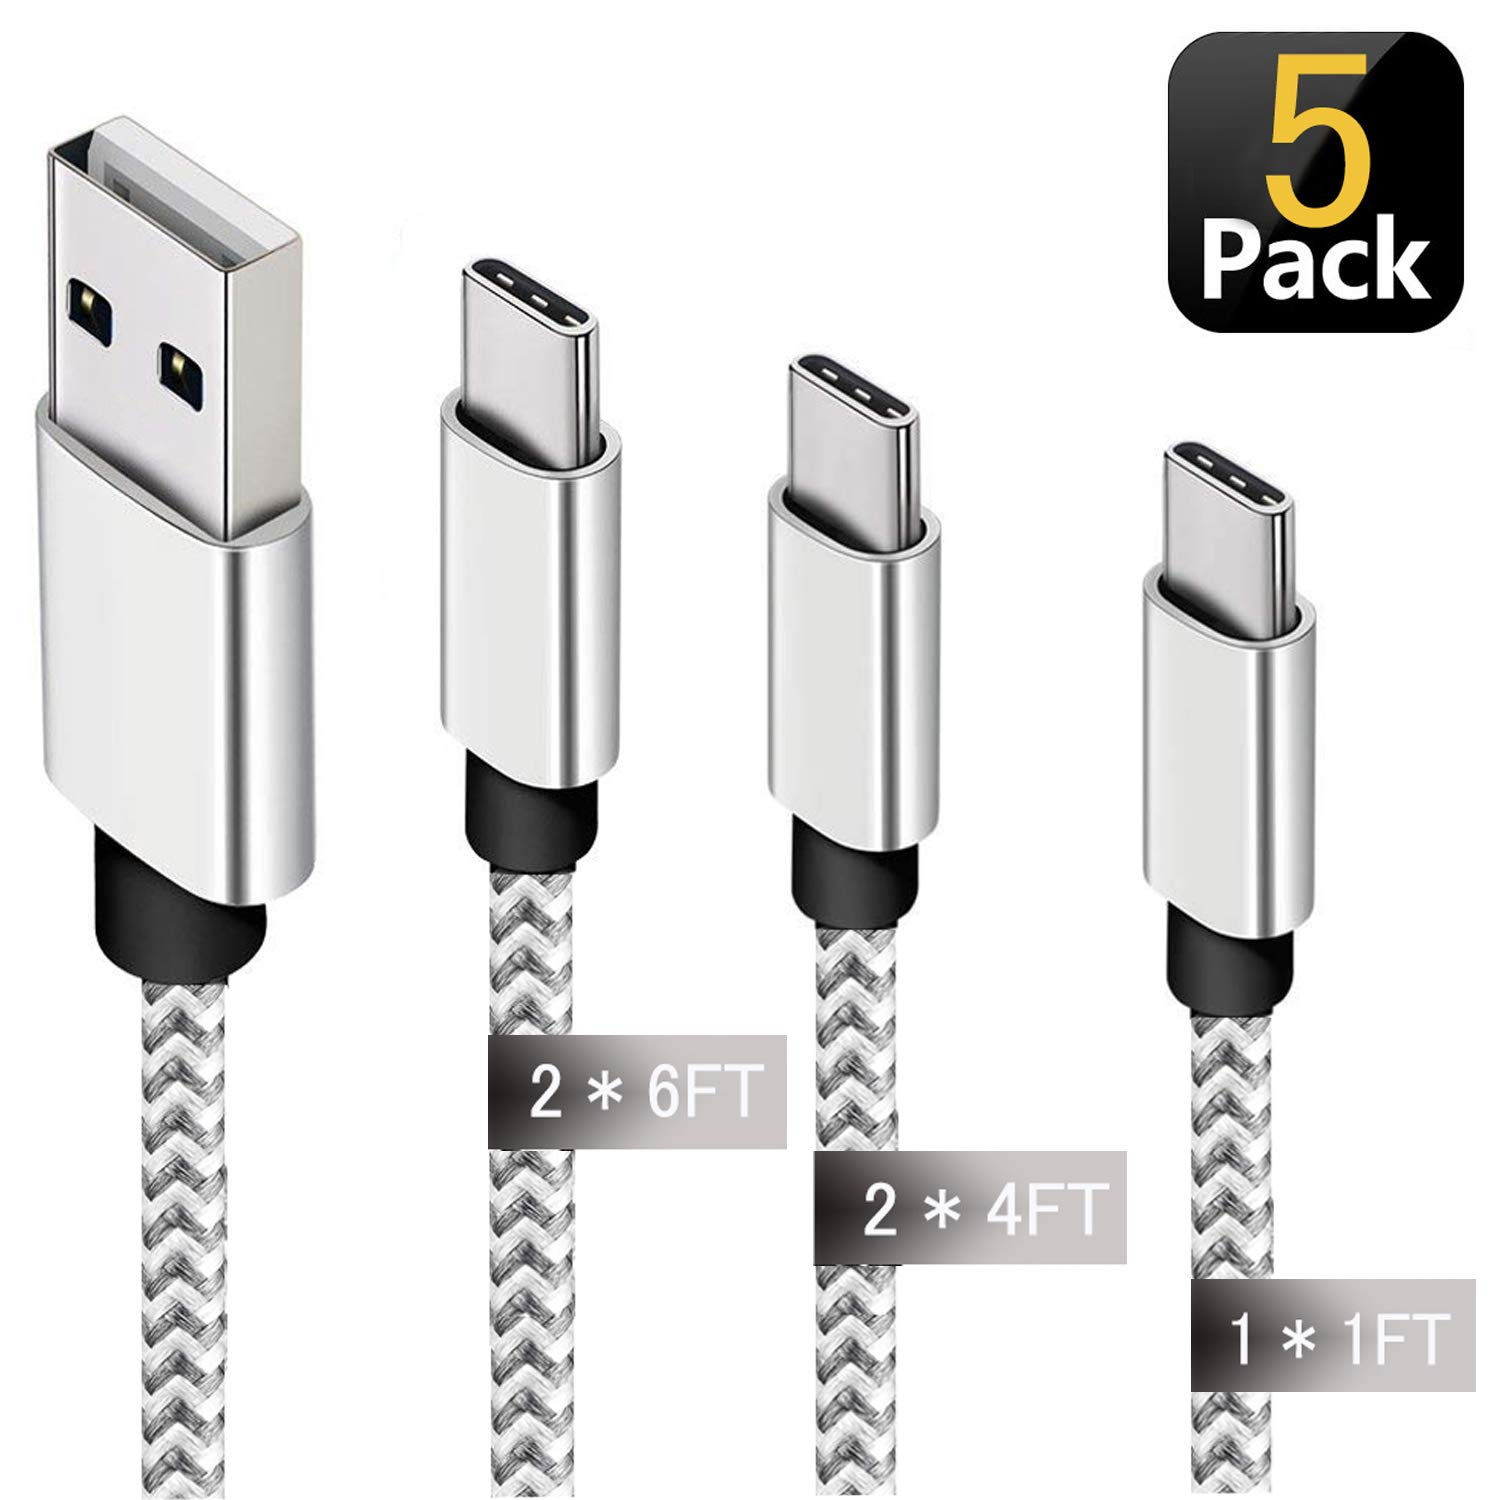 KeepMini USB Type C Cable 5 Pack Fast Charger USB A 2.0 to USB-C Nylon Braided USB C Cable Compatible Samsung Galaxy S10 S9 Plus Note 9 8,Google Pixel (1x1ft,2x4ft, 2x6ft) - Silver